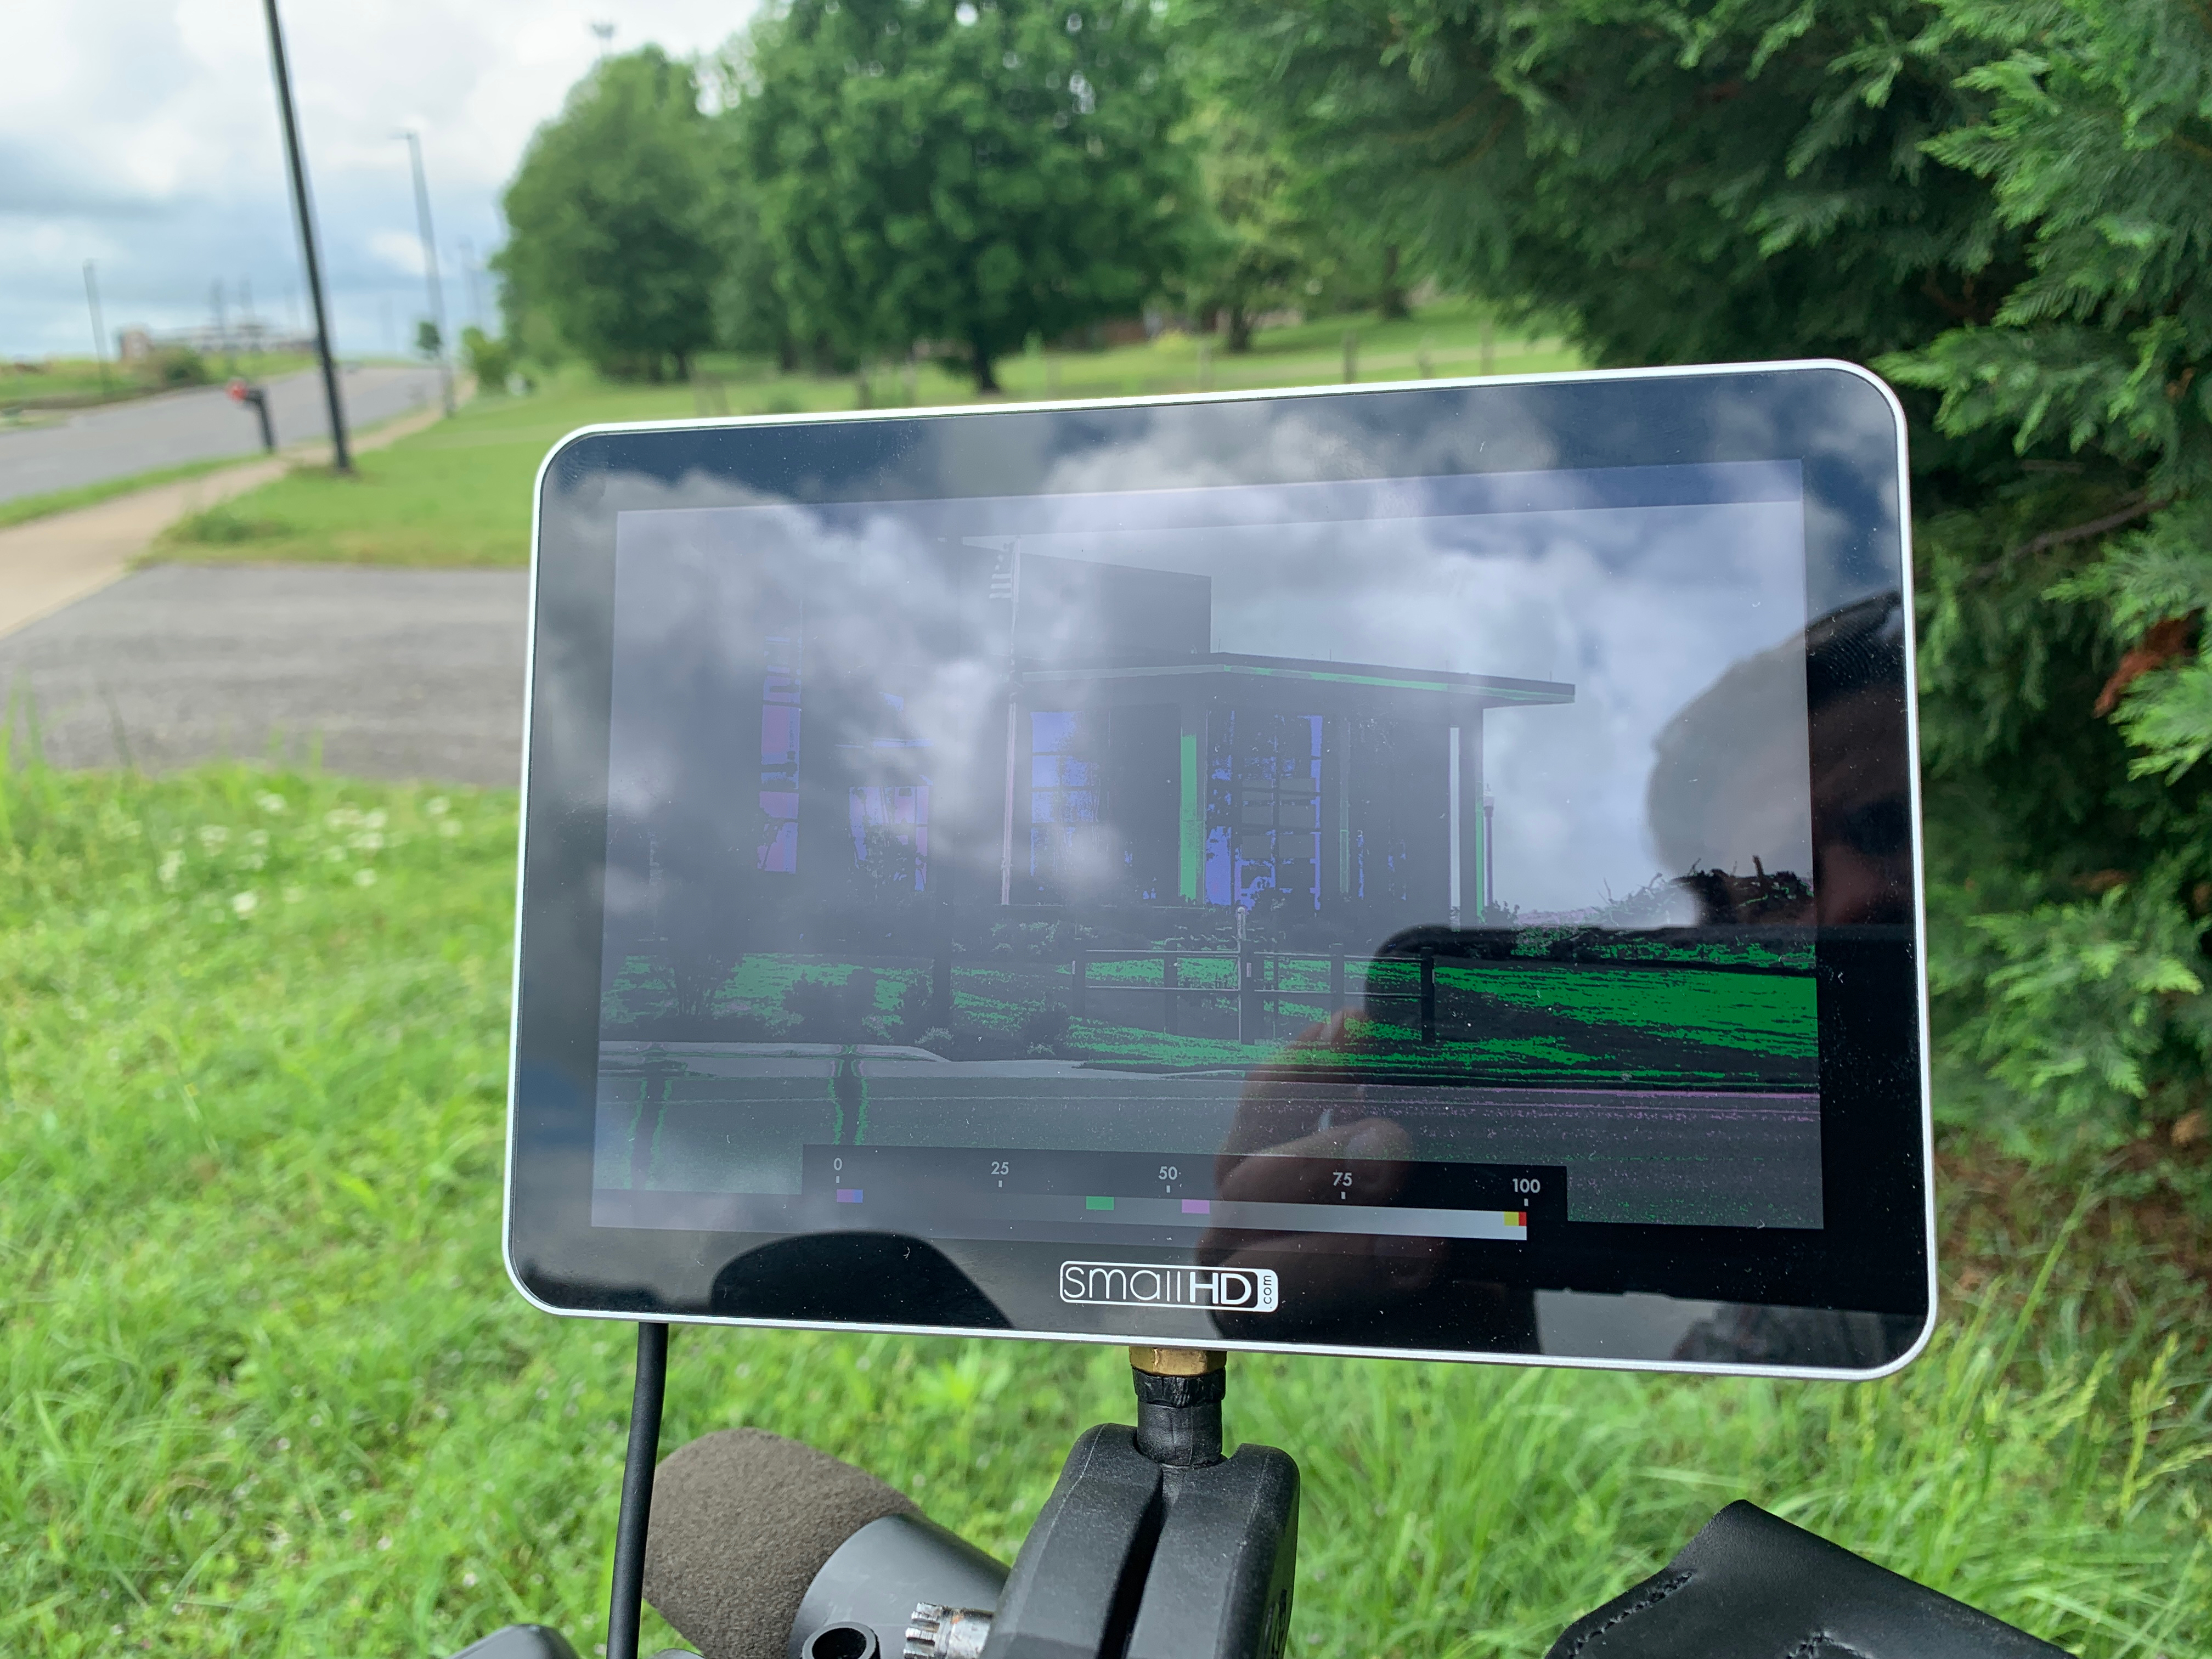 SmallHD Focus 7 Review. Is 1000 Nits Bright Enough? 1